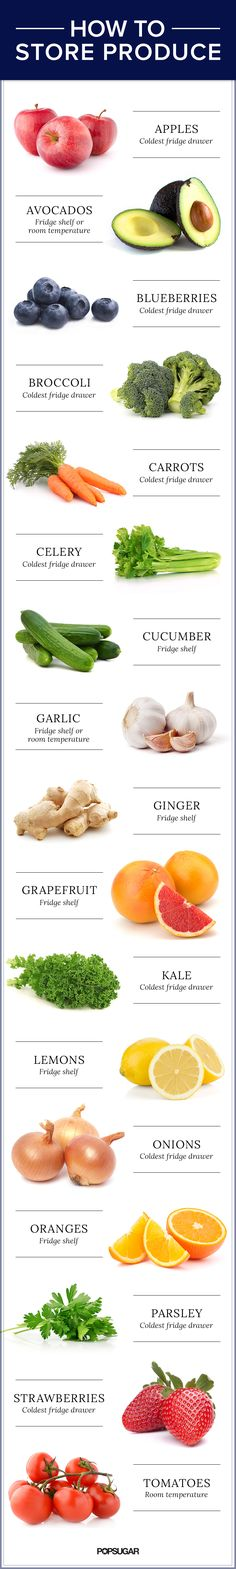 How to optimize the freshness of your produce by storing it right.